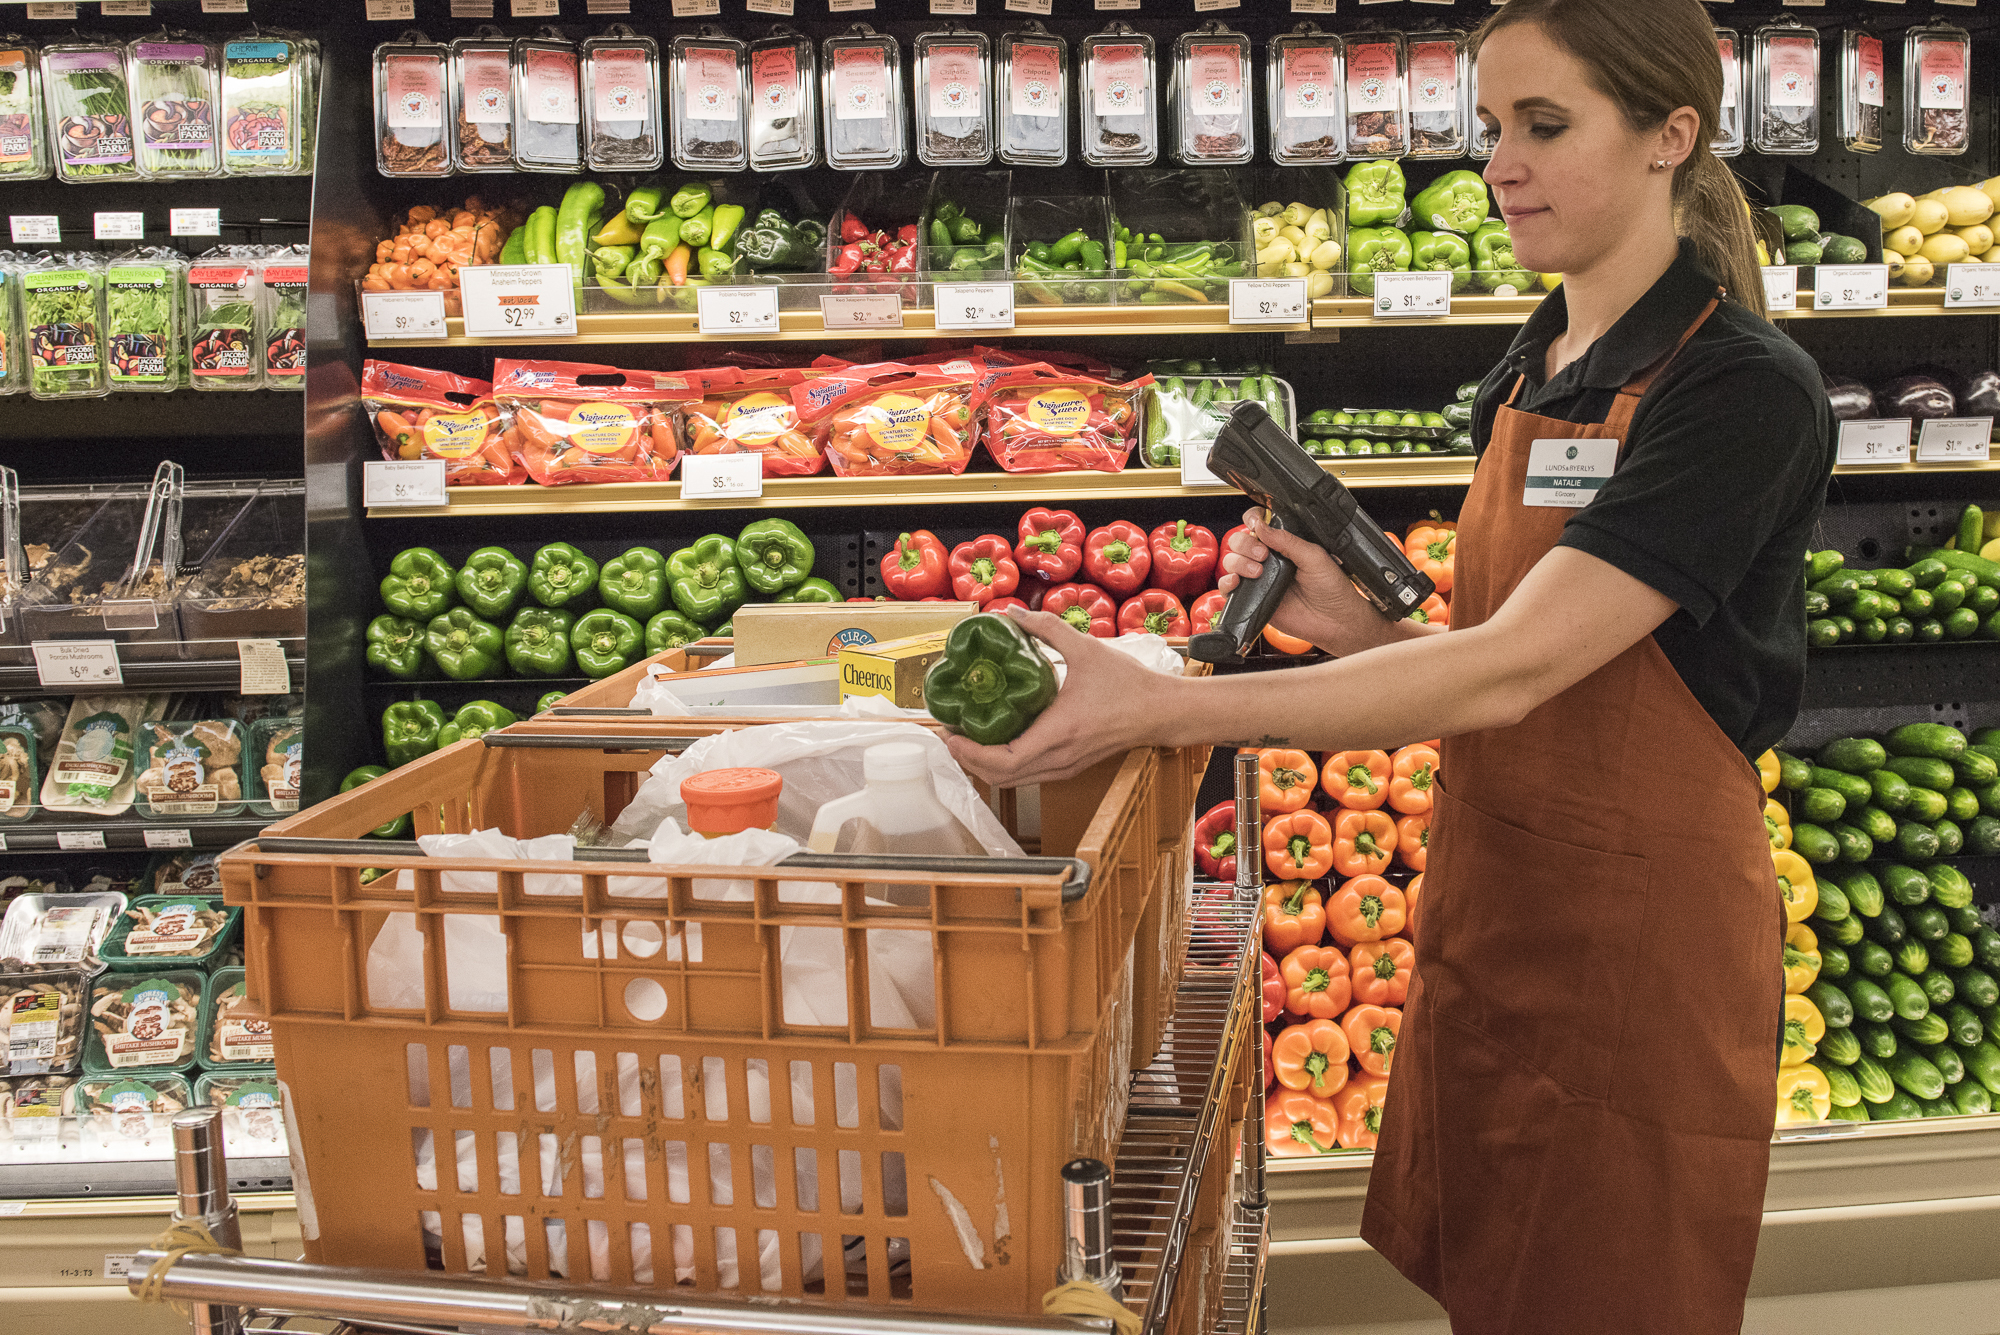 <p>Customers can choose to pick up their online grocery order at all Lunds & Byerly stores. During the scheduled delivery time, customers simply drive to the designated parking spot or through the parcel pickup lane and the online shoppers will bring out their order.</p>